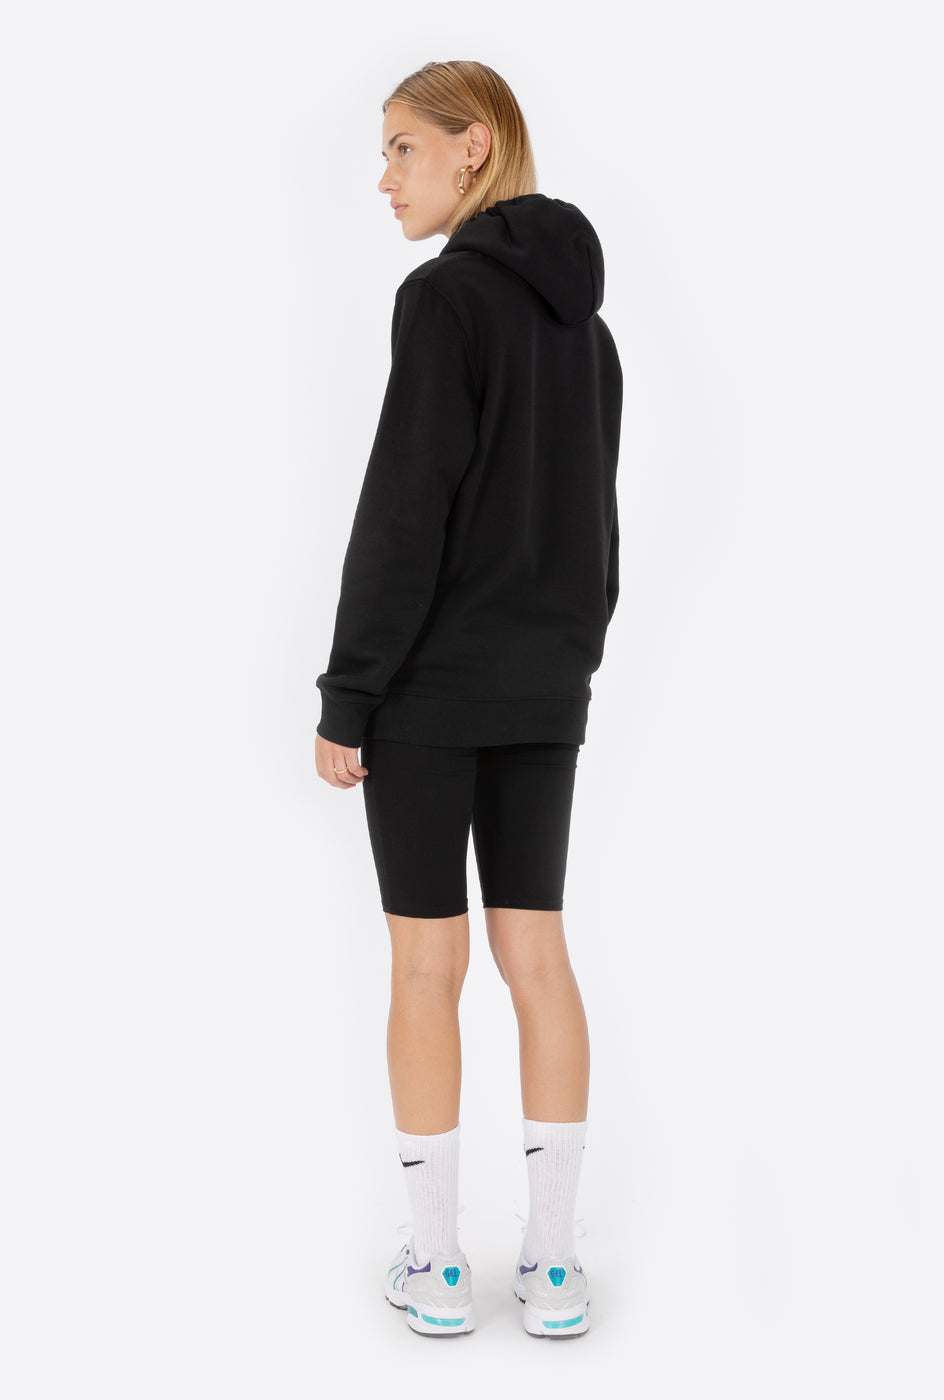 Hoodie Black Classic Rad - Embroidered